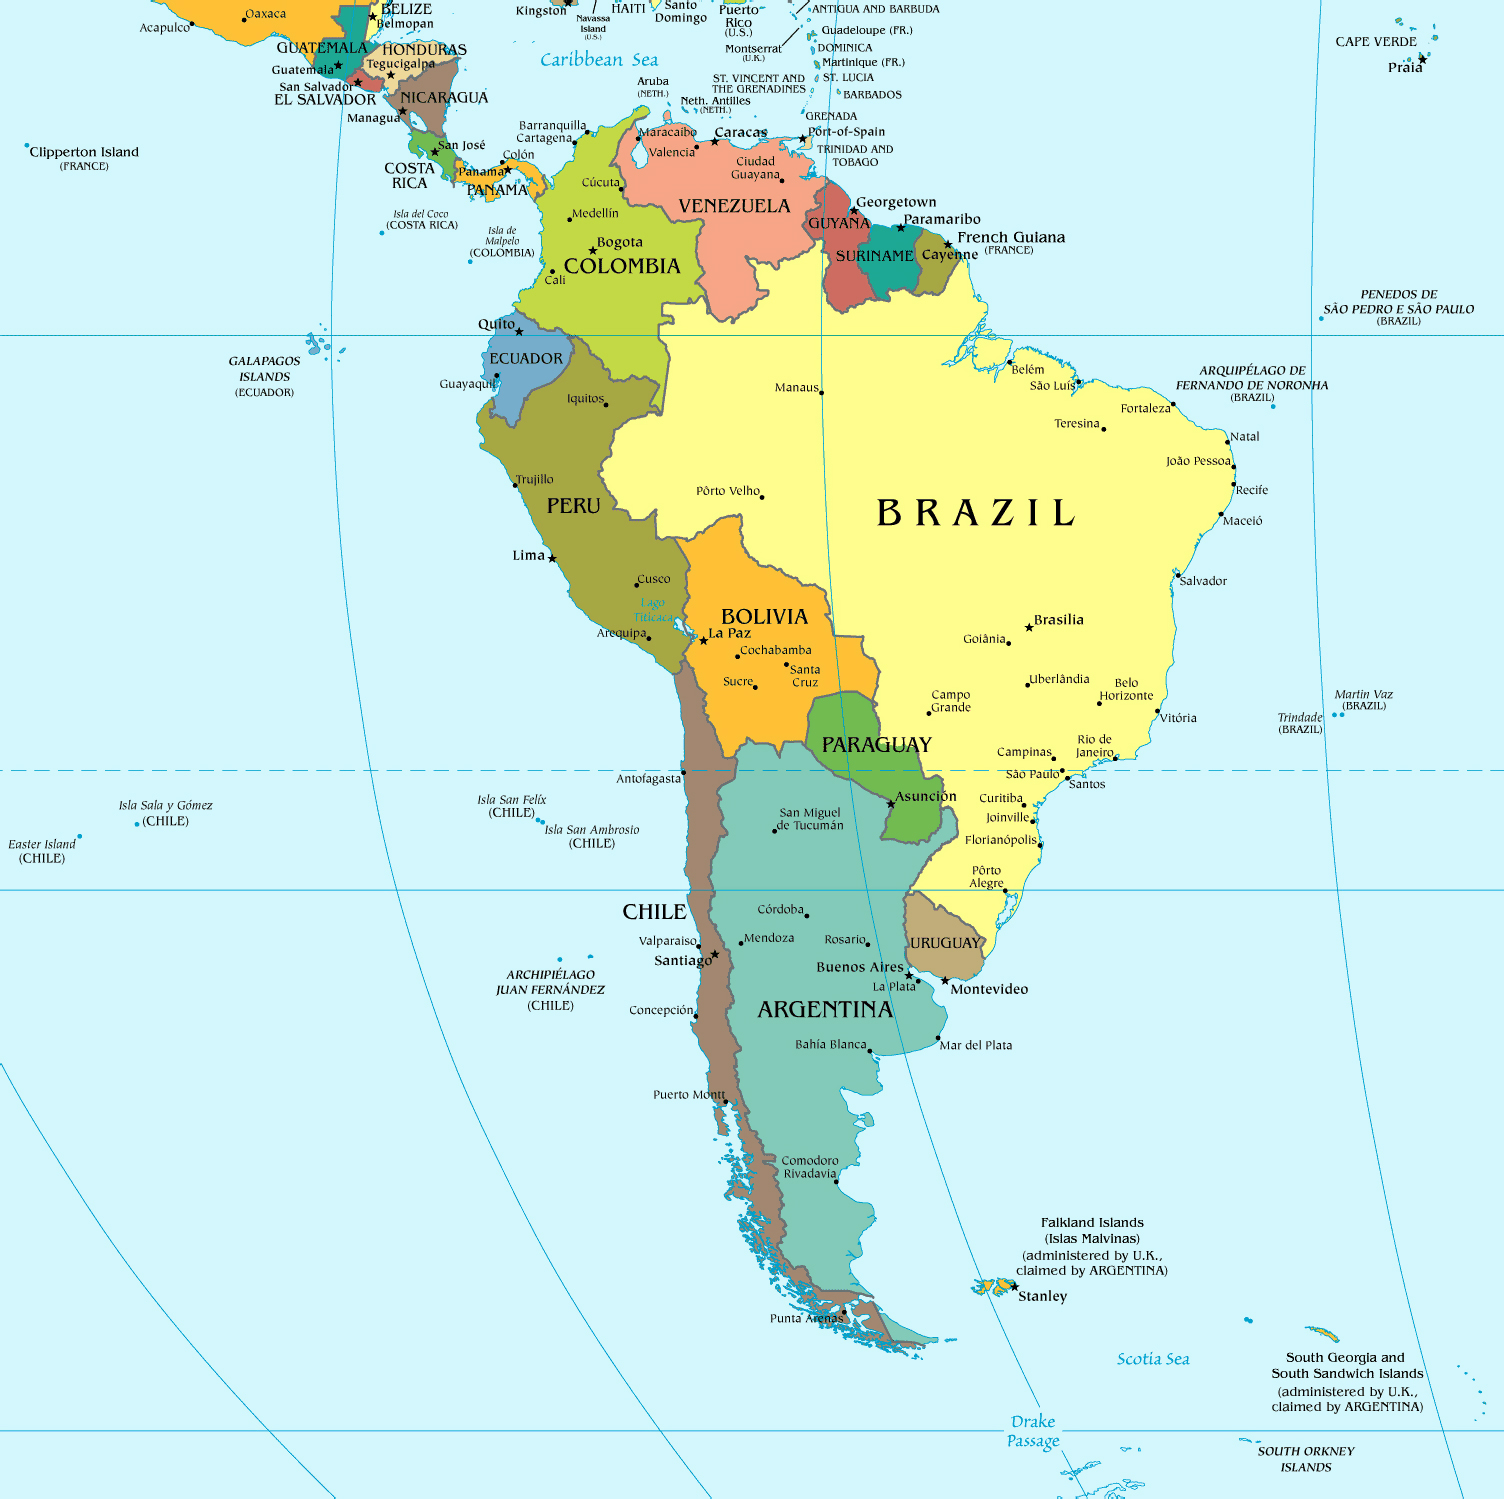 South America political map South America Mapsland Maps of the